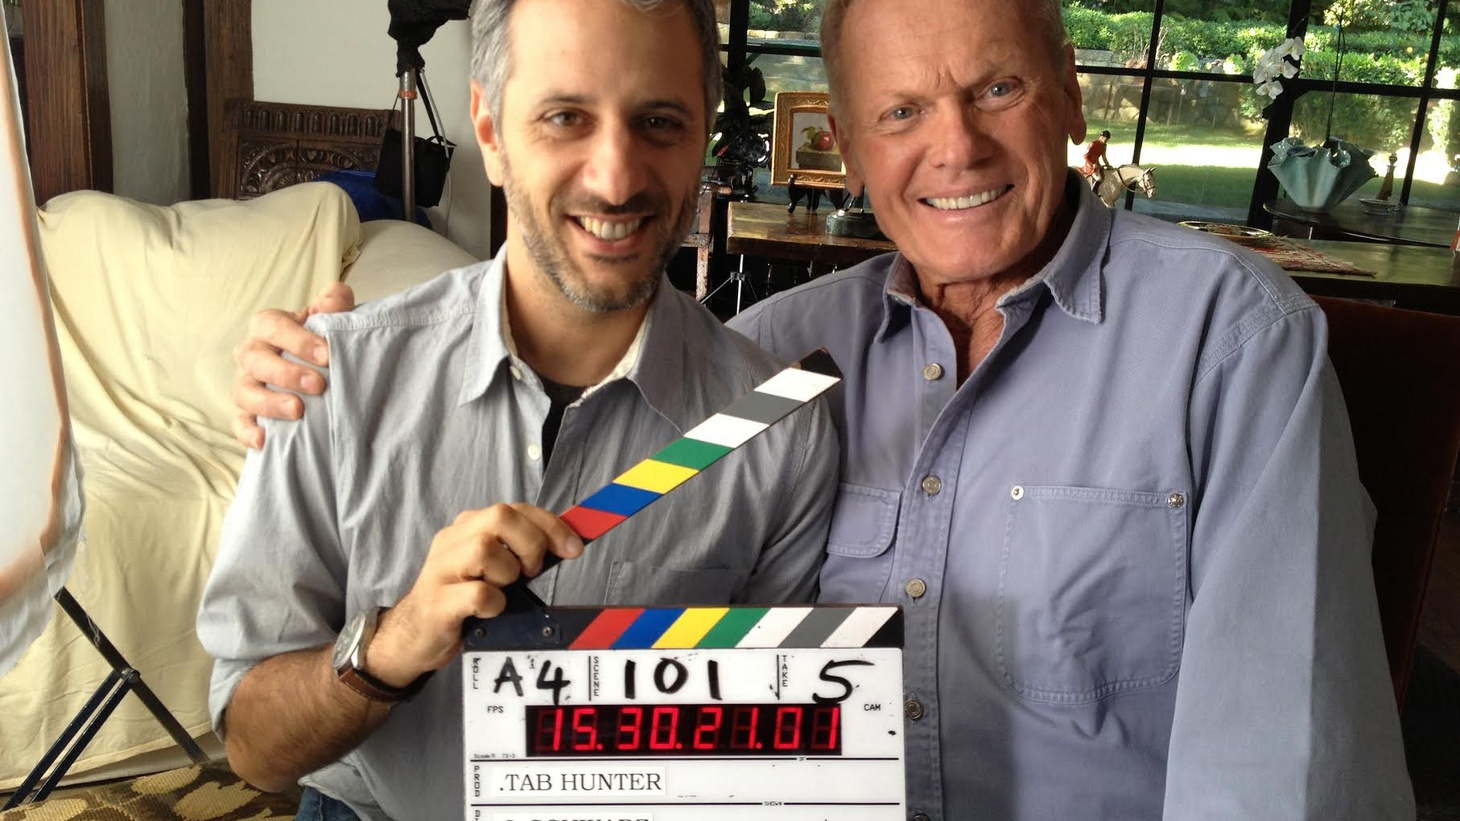 Tab Hunter was the ultimate 1950's Hollywood heartthrob. Blond hair, blue eyes, stunning smile...and also gay. The multifaceted star, now nearly 84, tells his story in the new documentary Tab Hunter Confidential, directed by Jeffrey Schwarz.